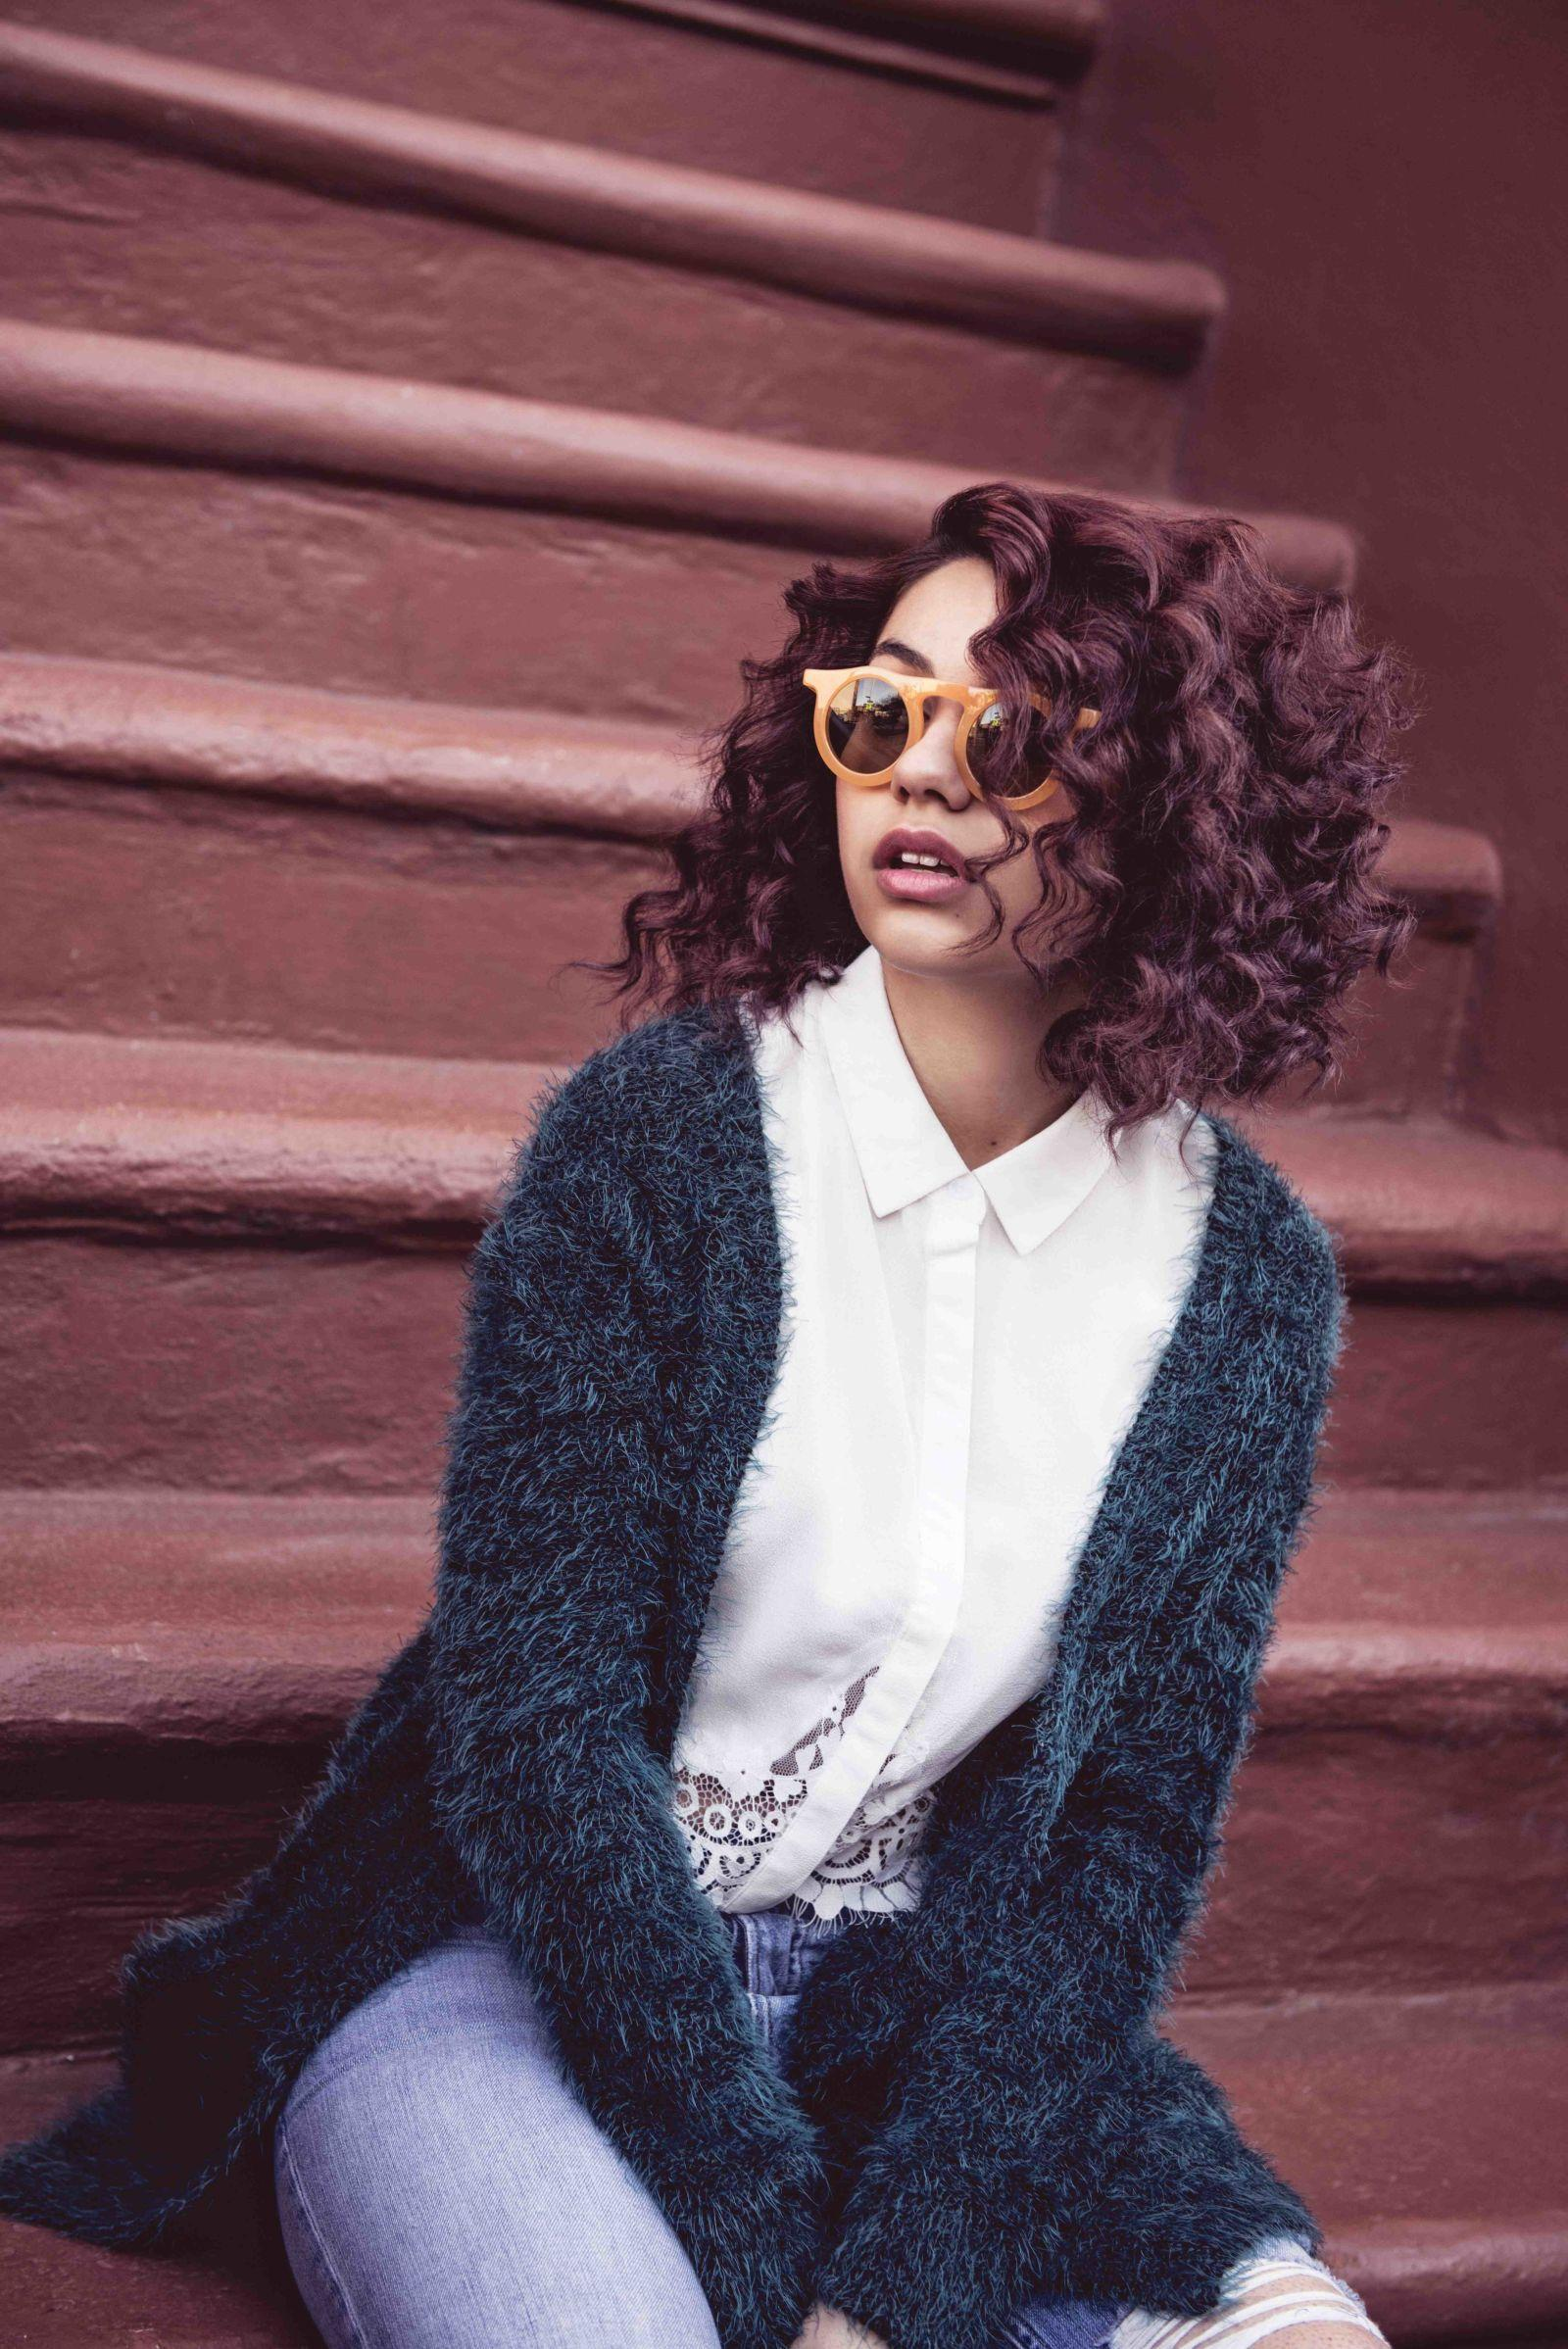 Alessia Cara Wallpapers High Quality